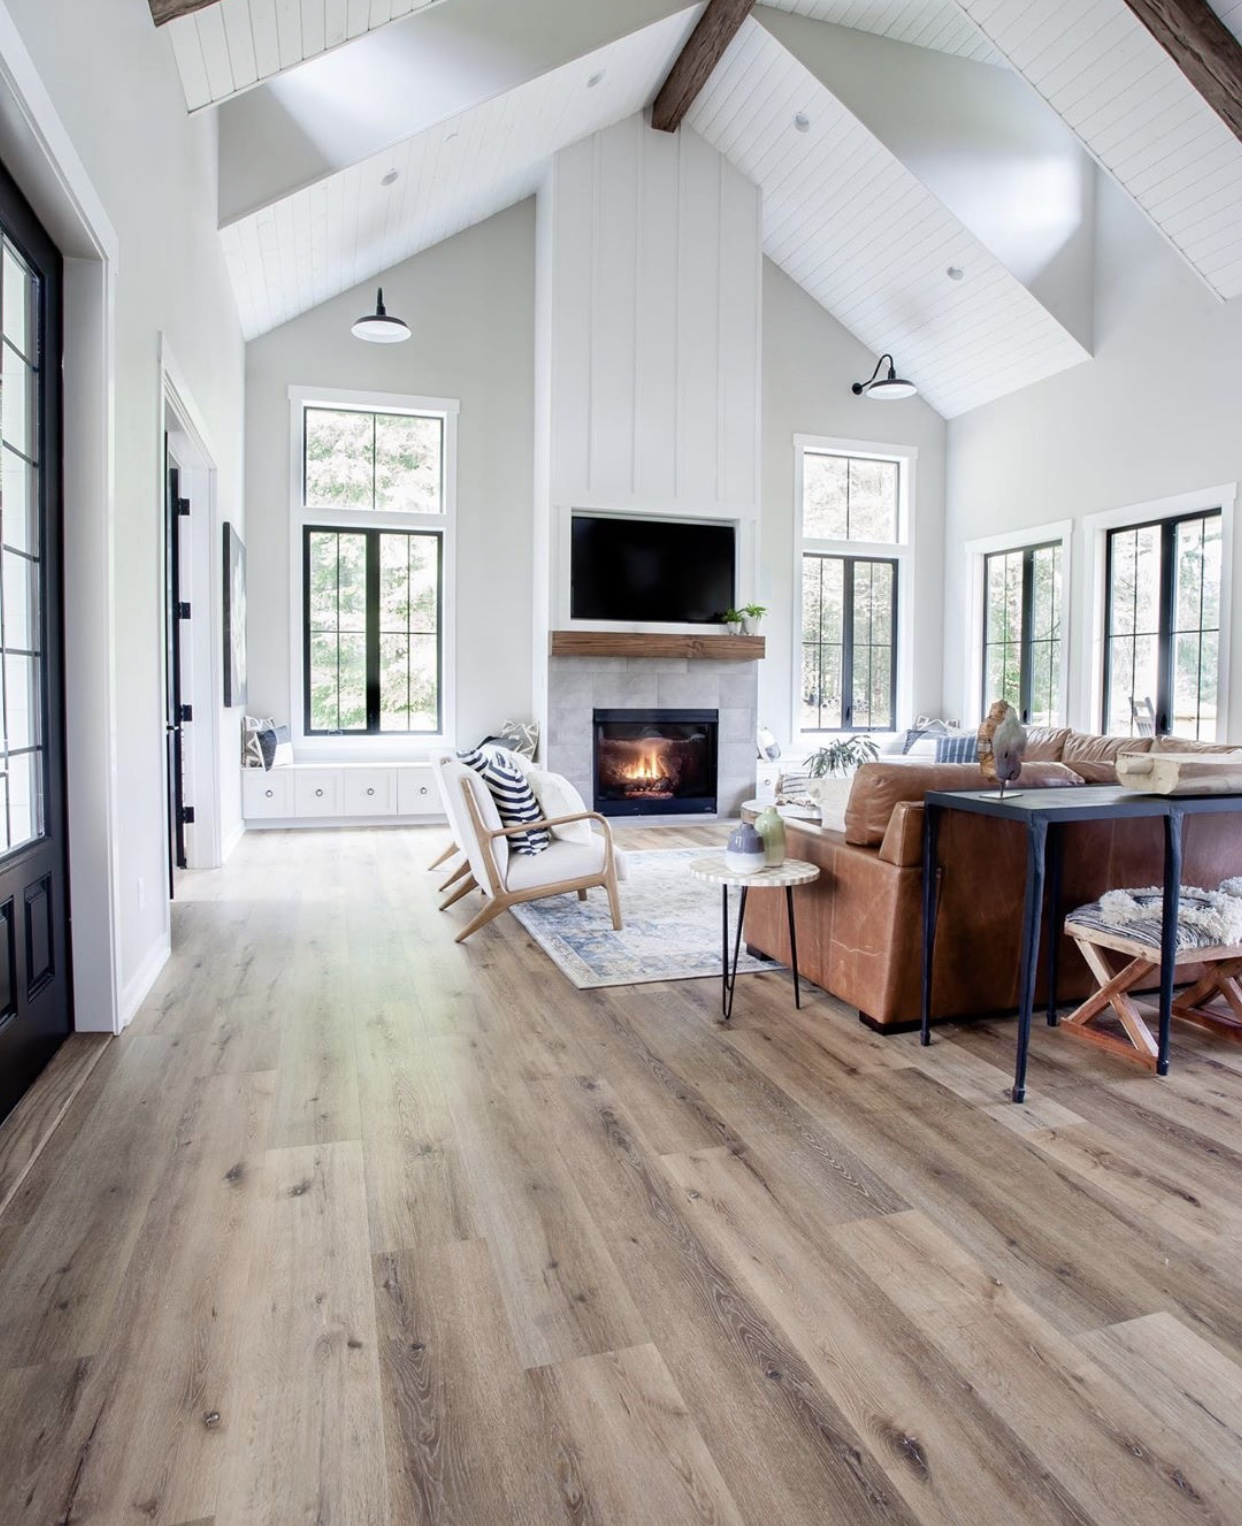 From the Duchateau LVT line, which will be going installed in the Integrity Custom homes at Gateway Village. Image credit Duchateau